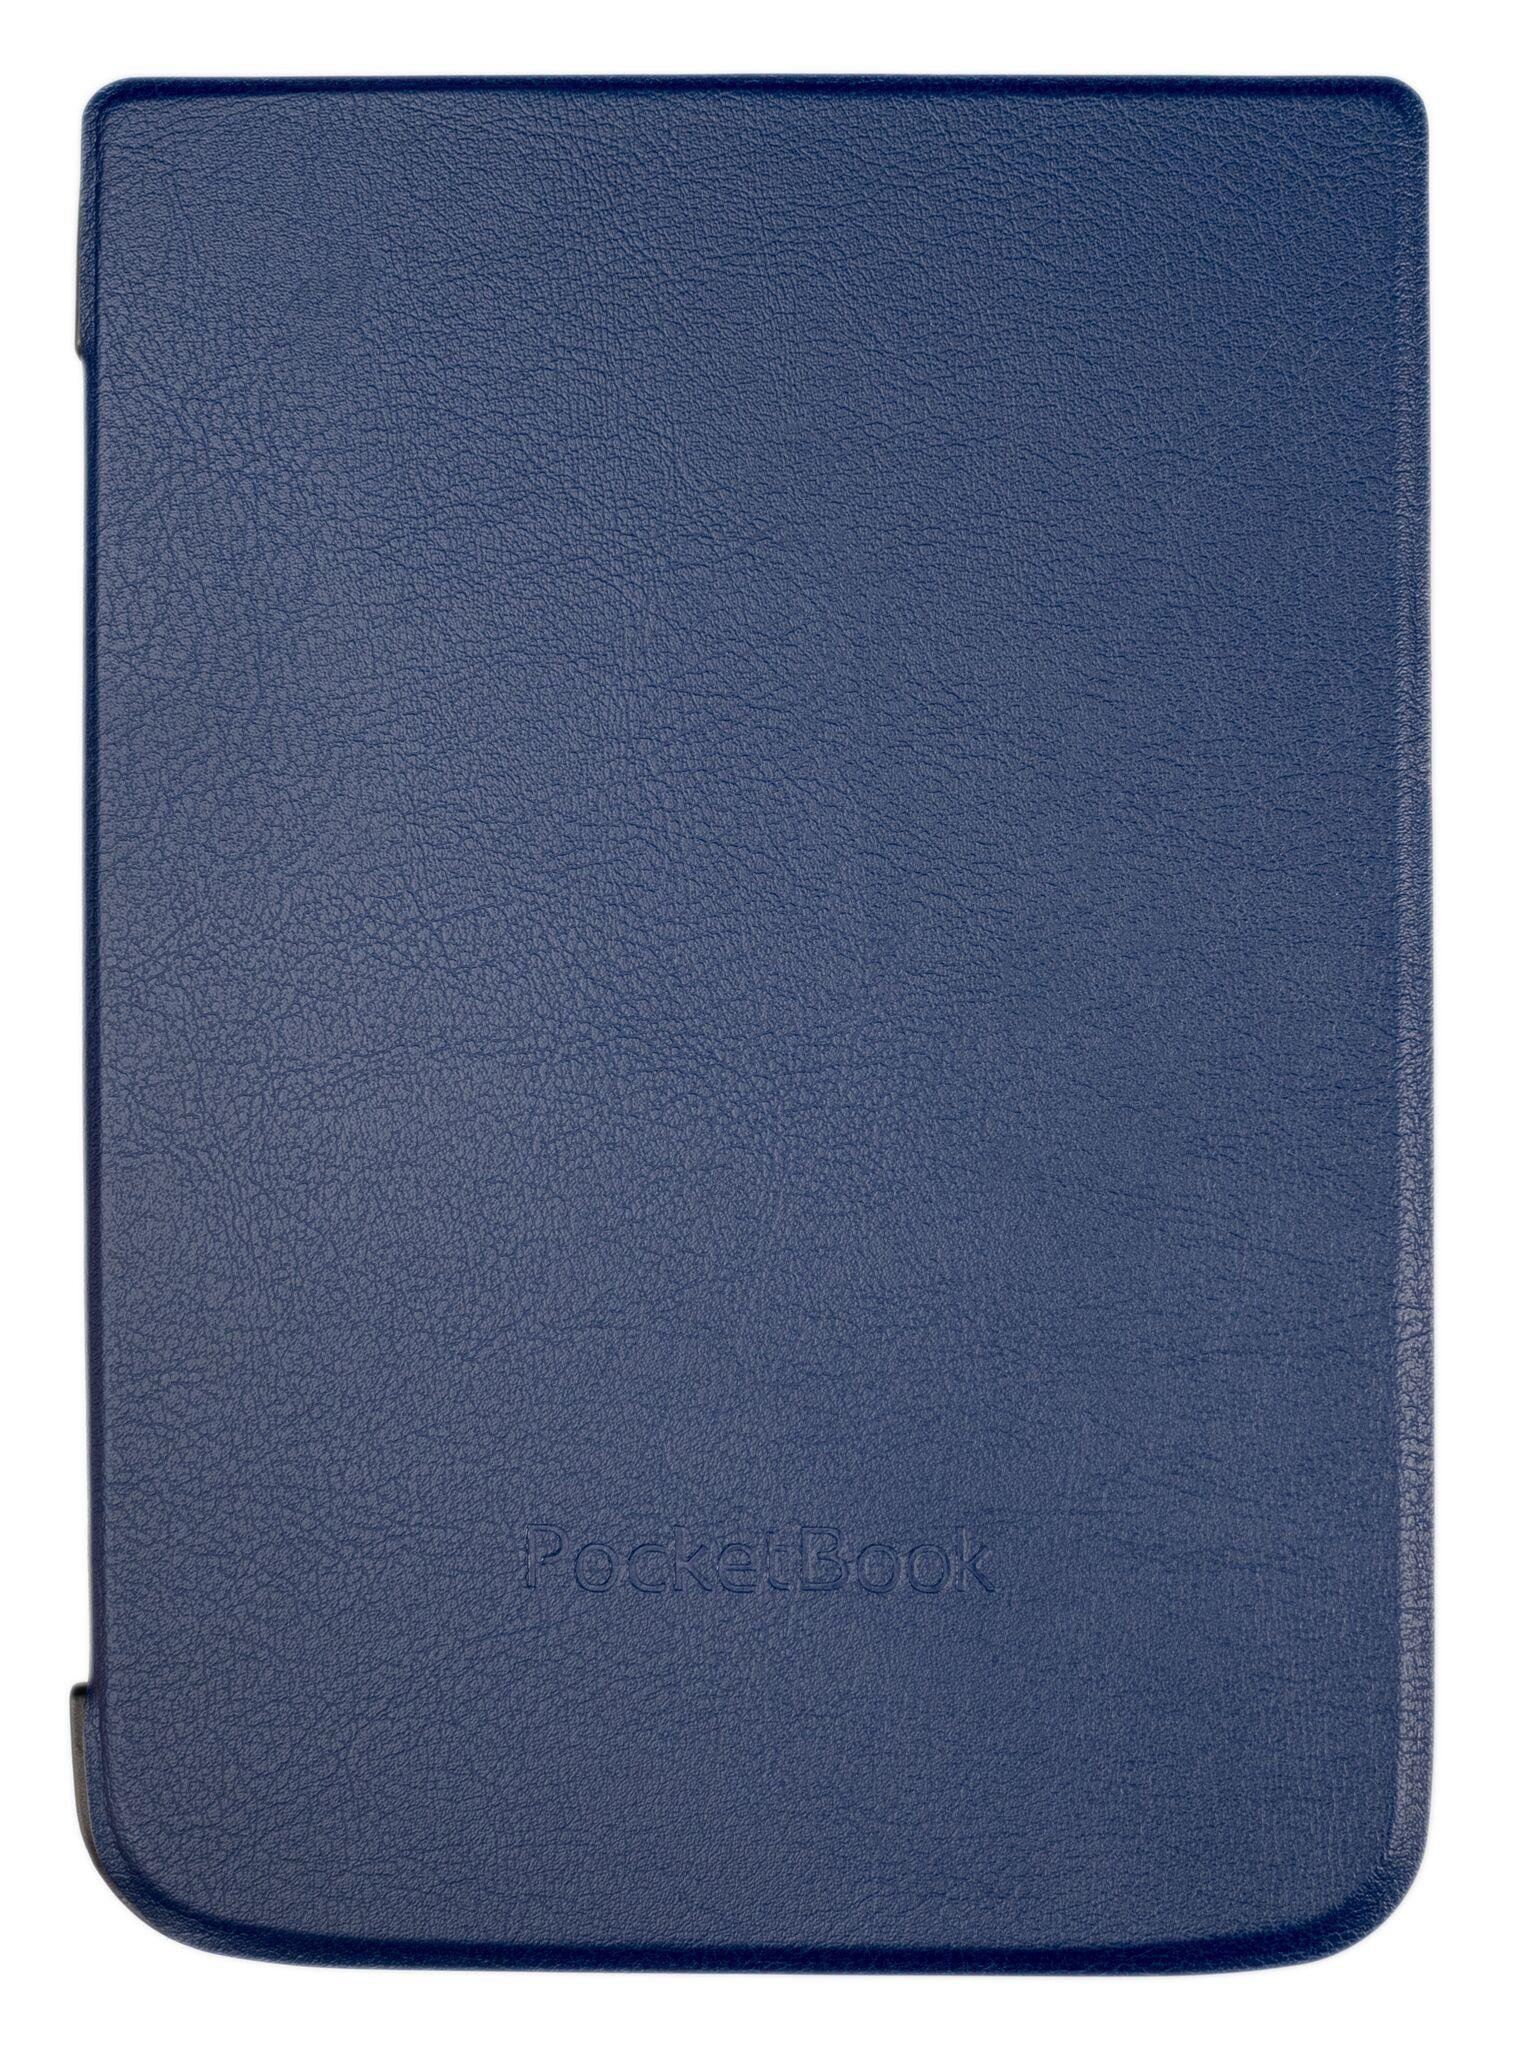 "Калъф Pocketbook Cover Shell InkPad 740, за ел.книга/ четец/ PB 740, 7.8"", син"